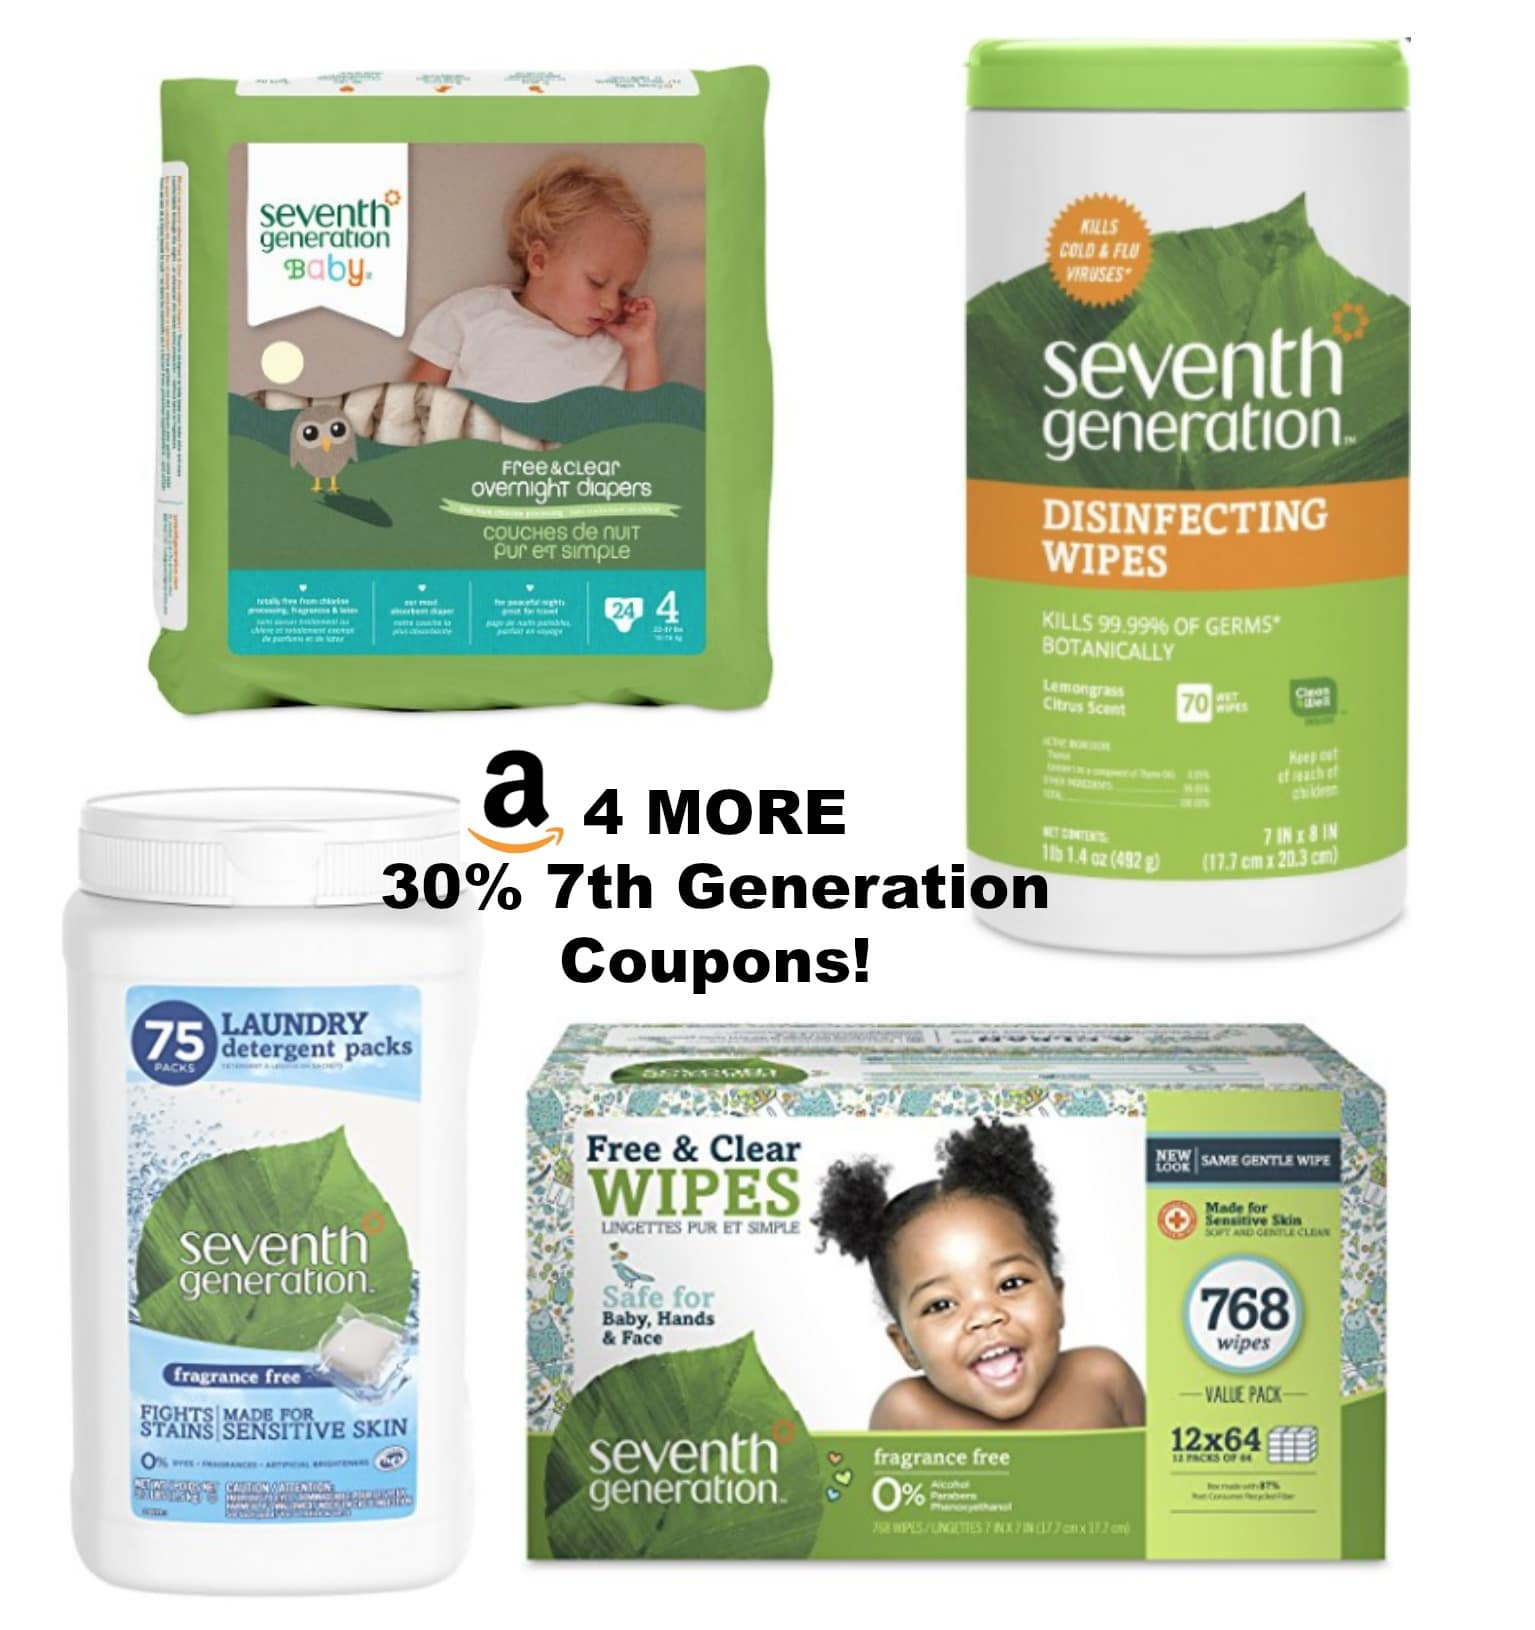 Seventh generation coupons 2019